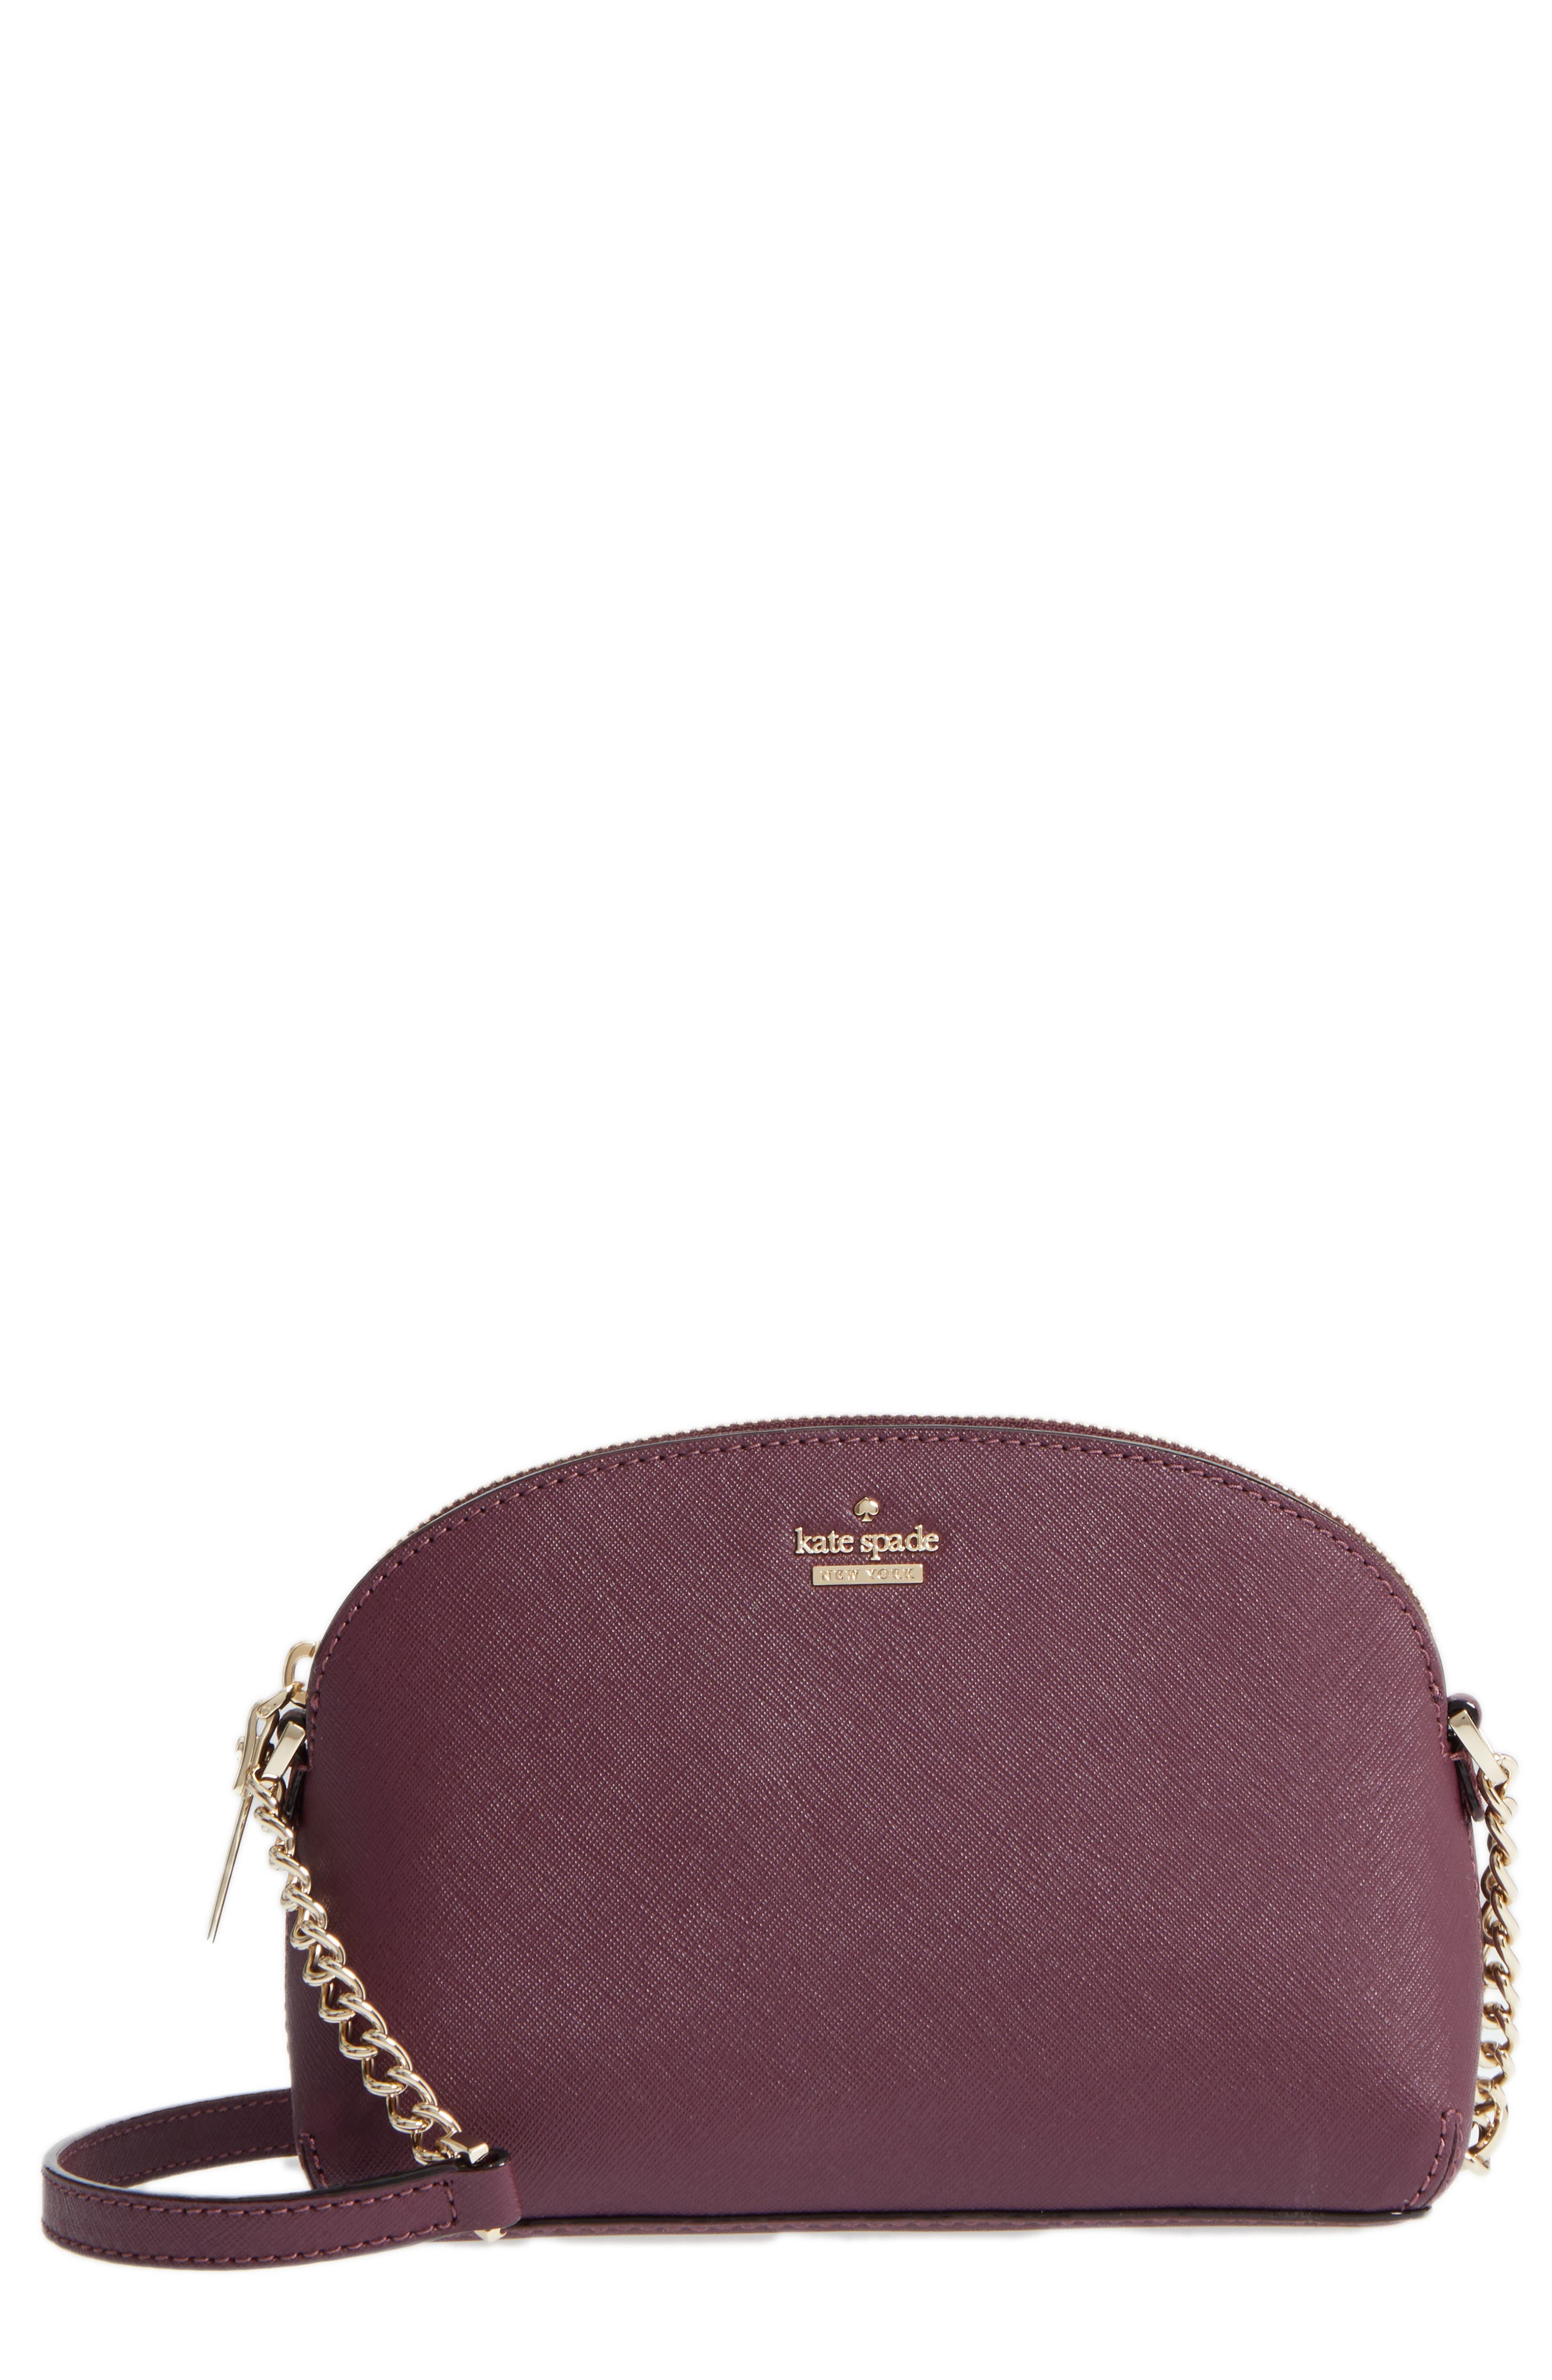 Main Image - kate spade new york cameron street - hilli leather crossbody bag